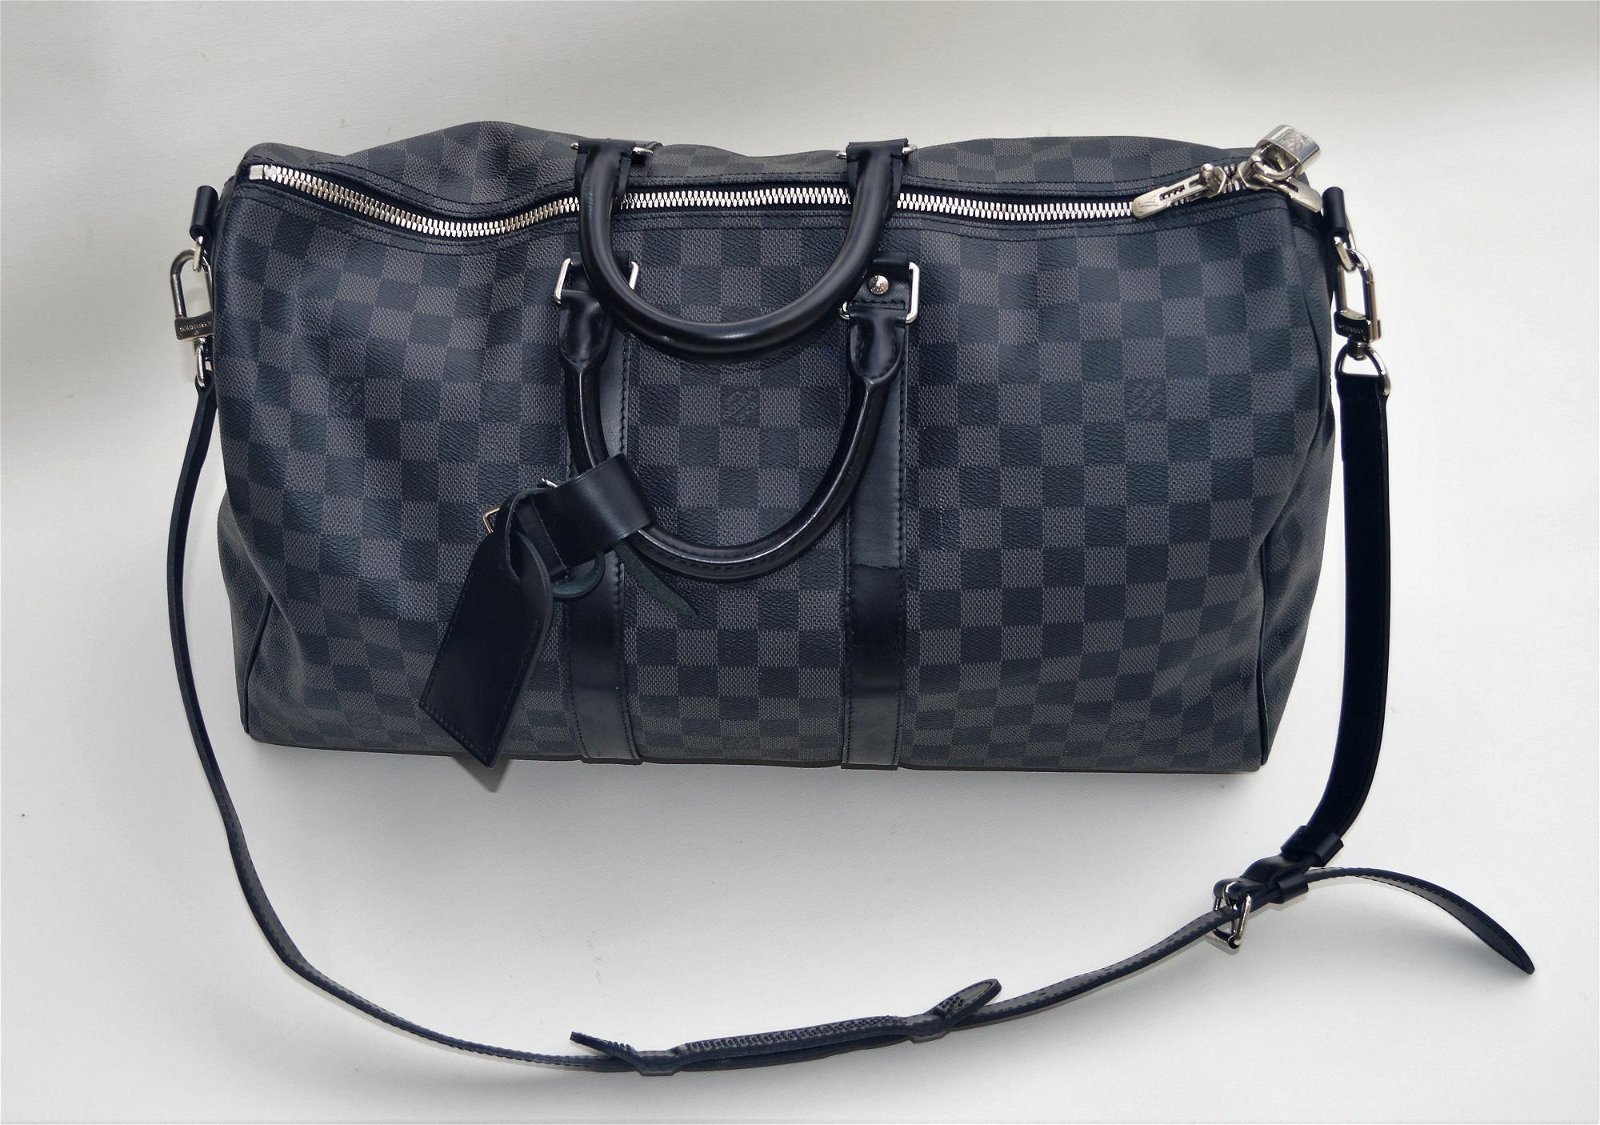 LOUIS VUITTON DAUMIER CANVAS/LEATHER DUFFEL 45 KEEPALL